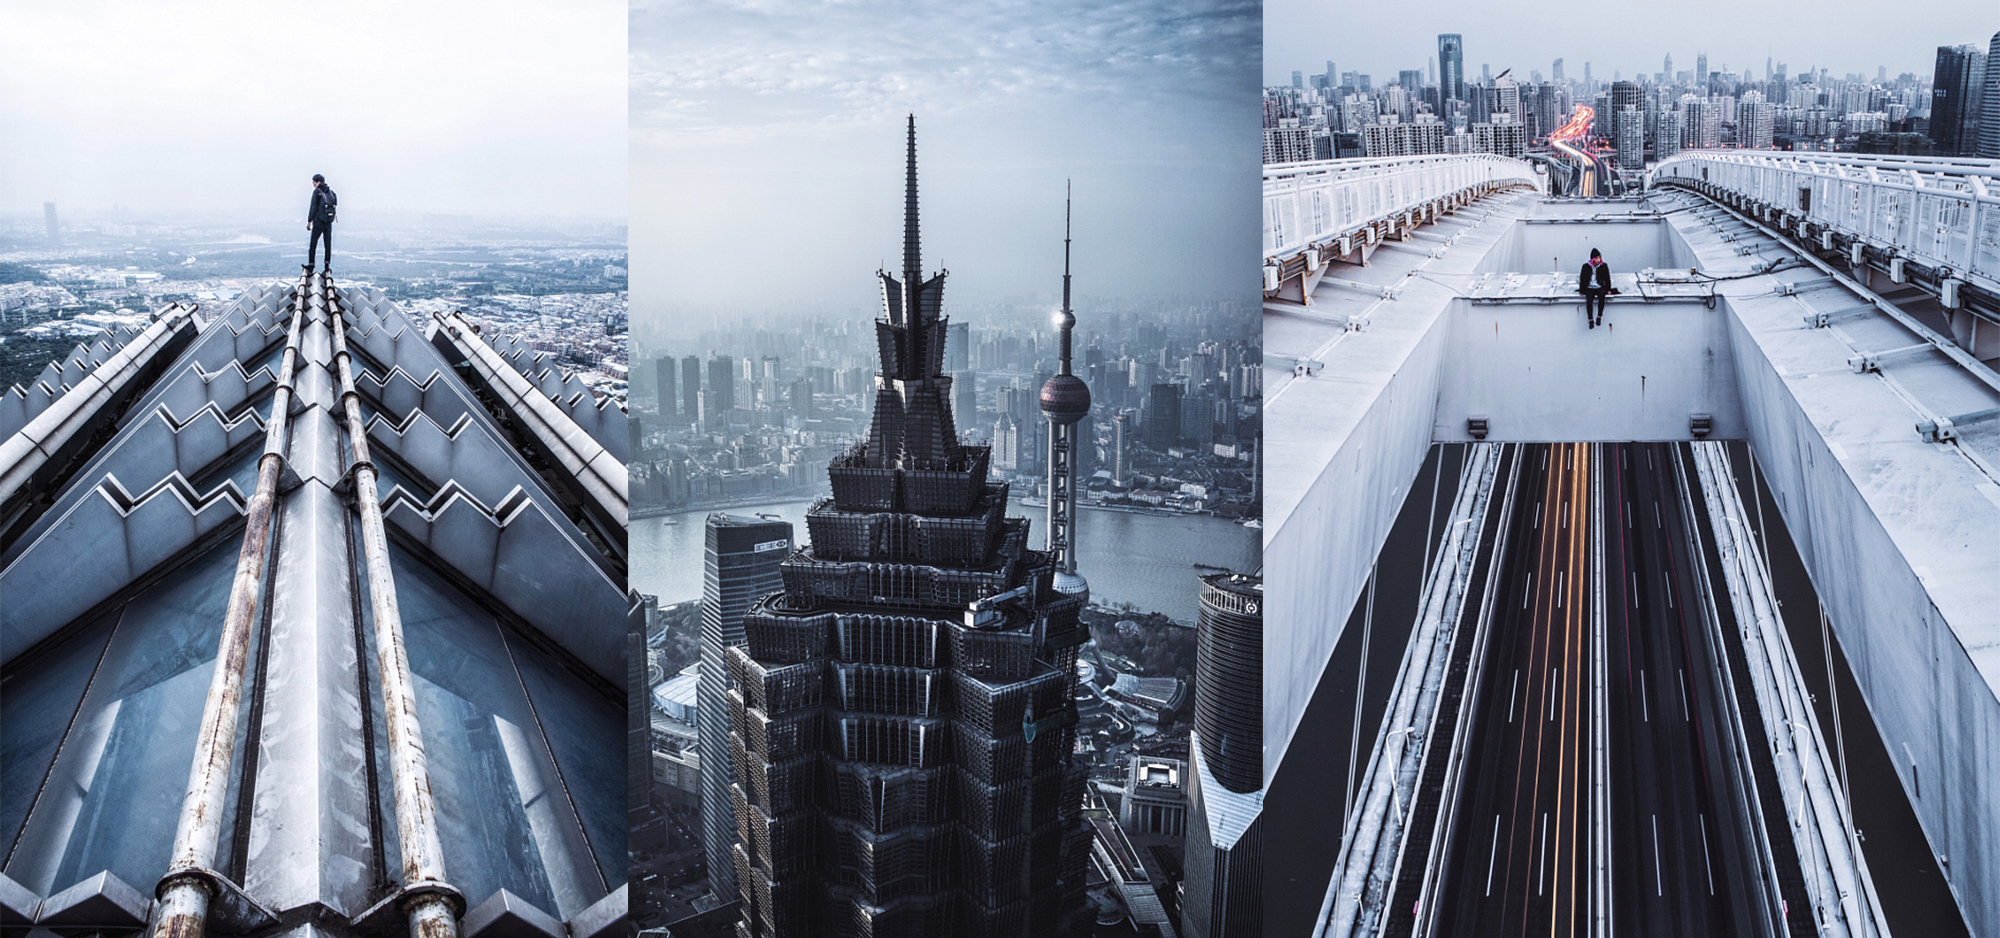 6 Top Tips For Photographing Rooftops and Cities